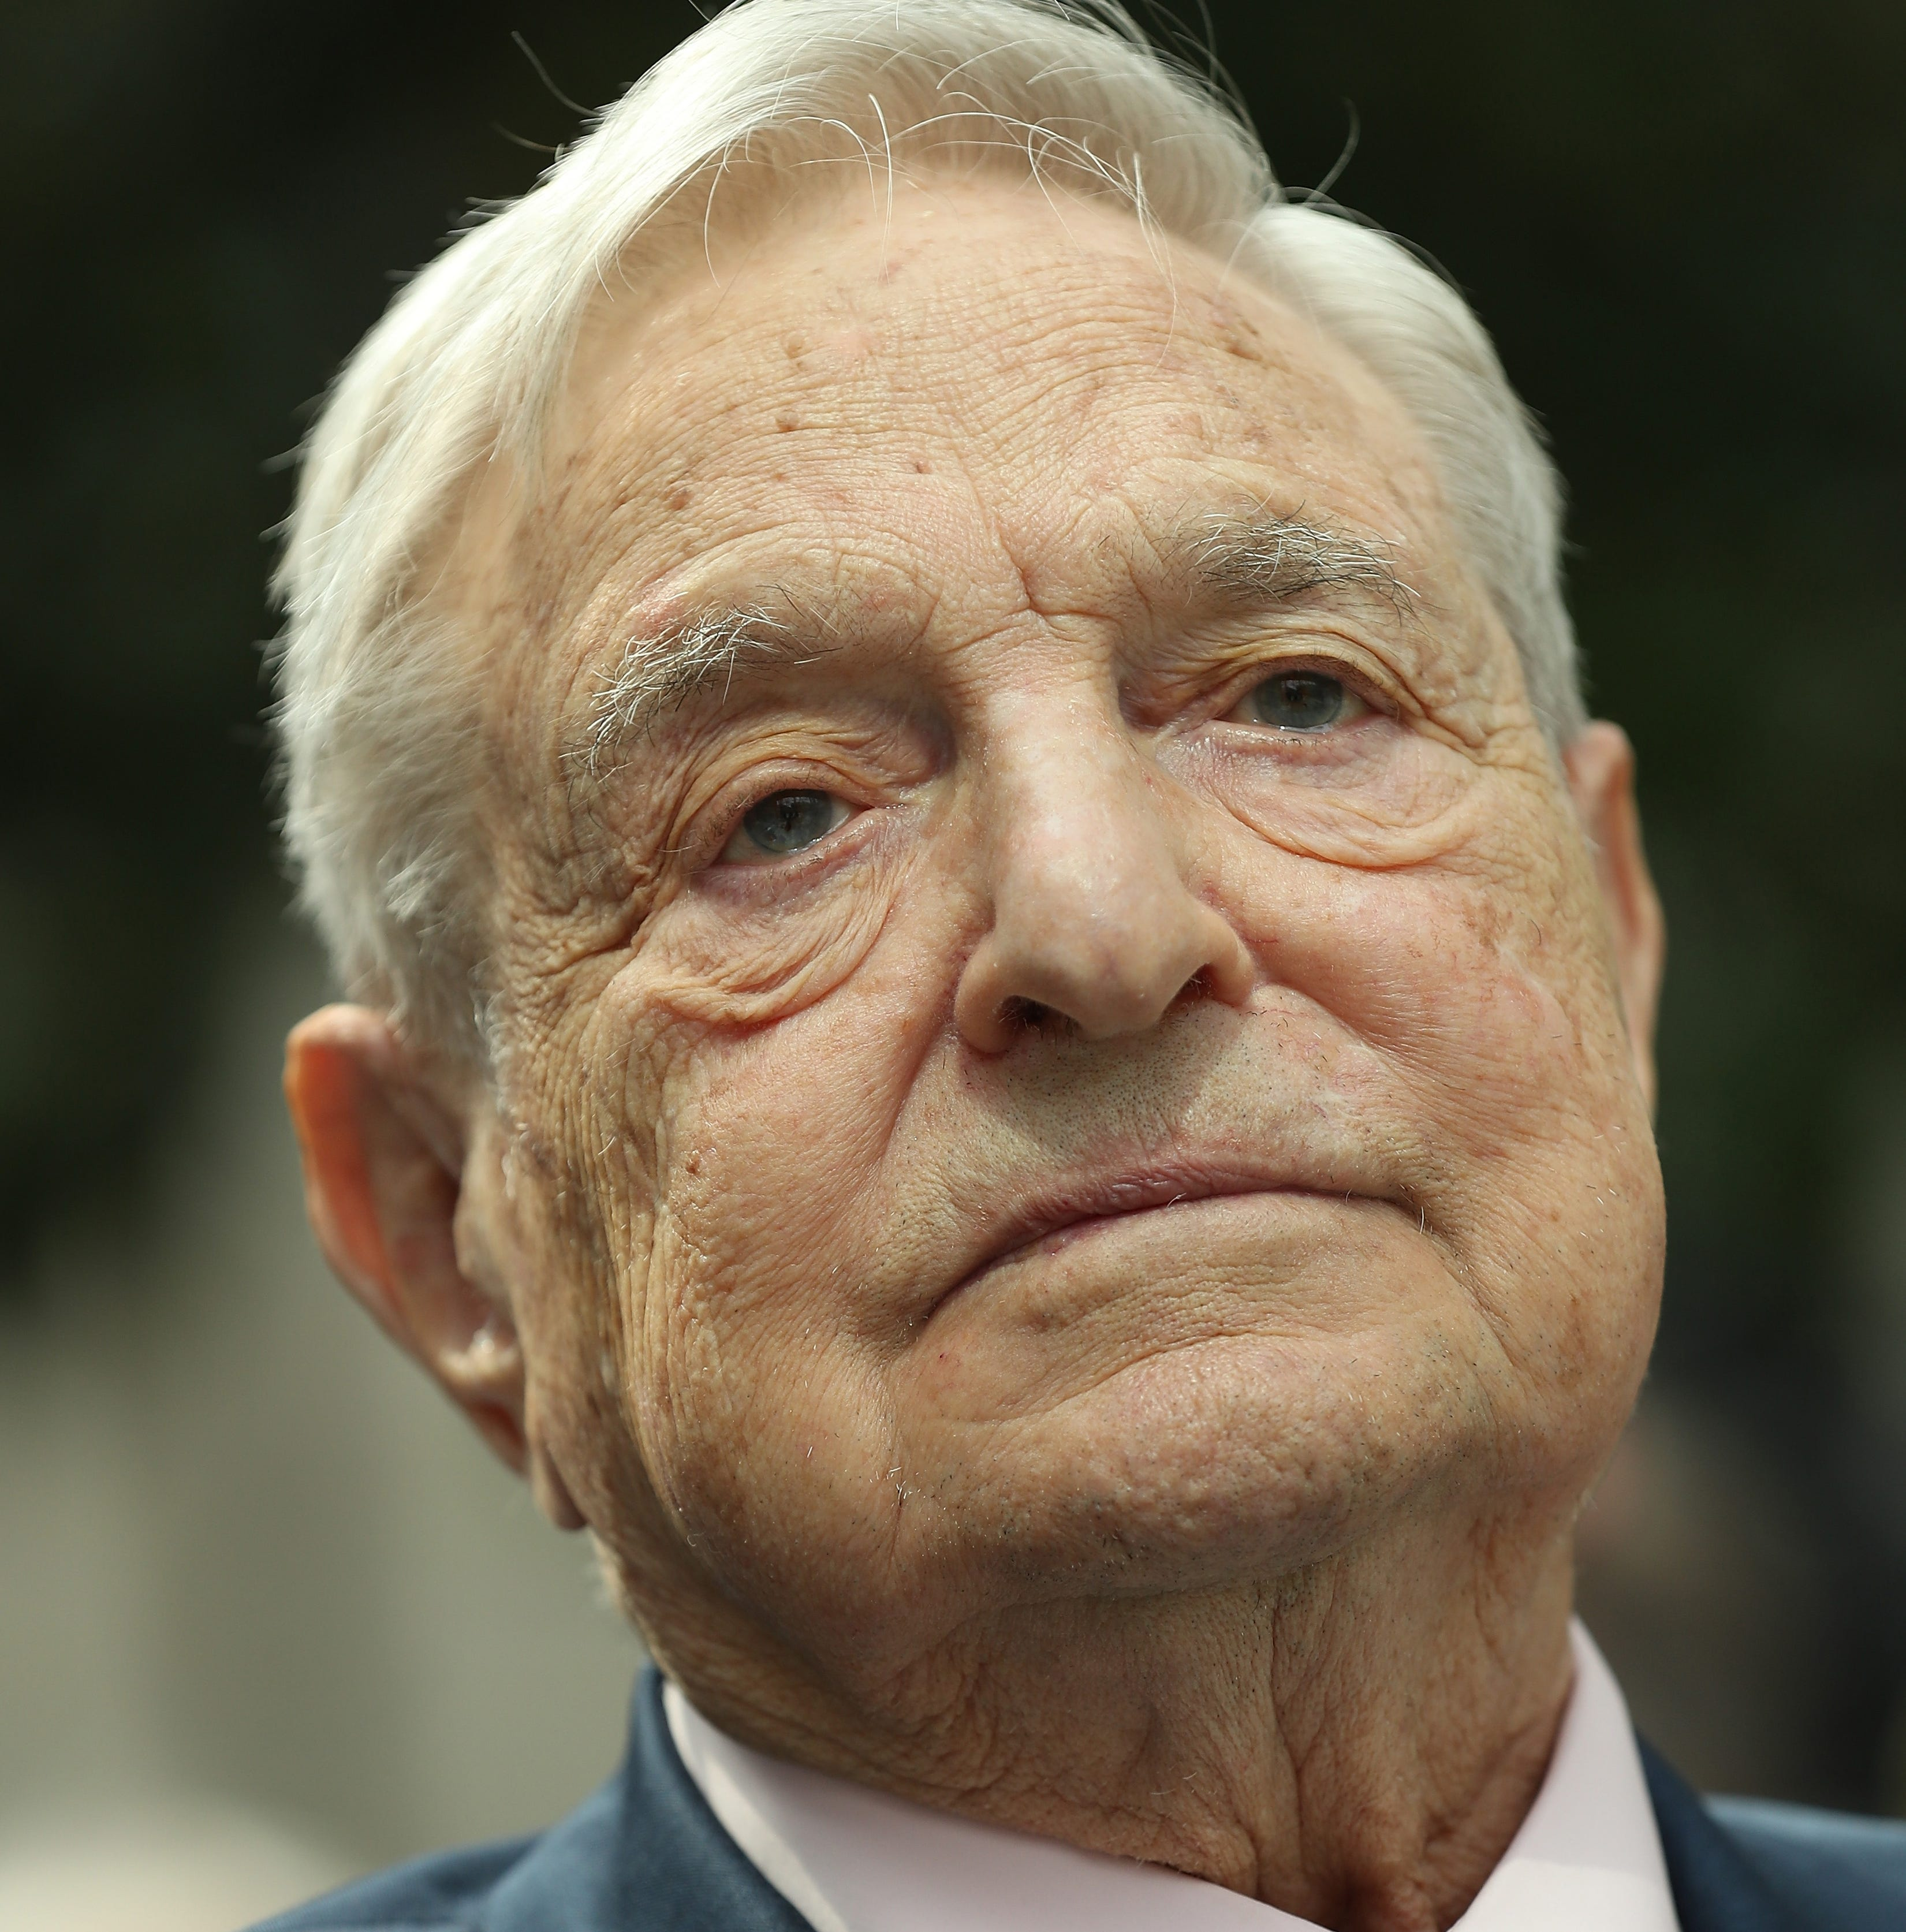 Bedford: Explosive device found in mailbox of George Soros' private company